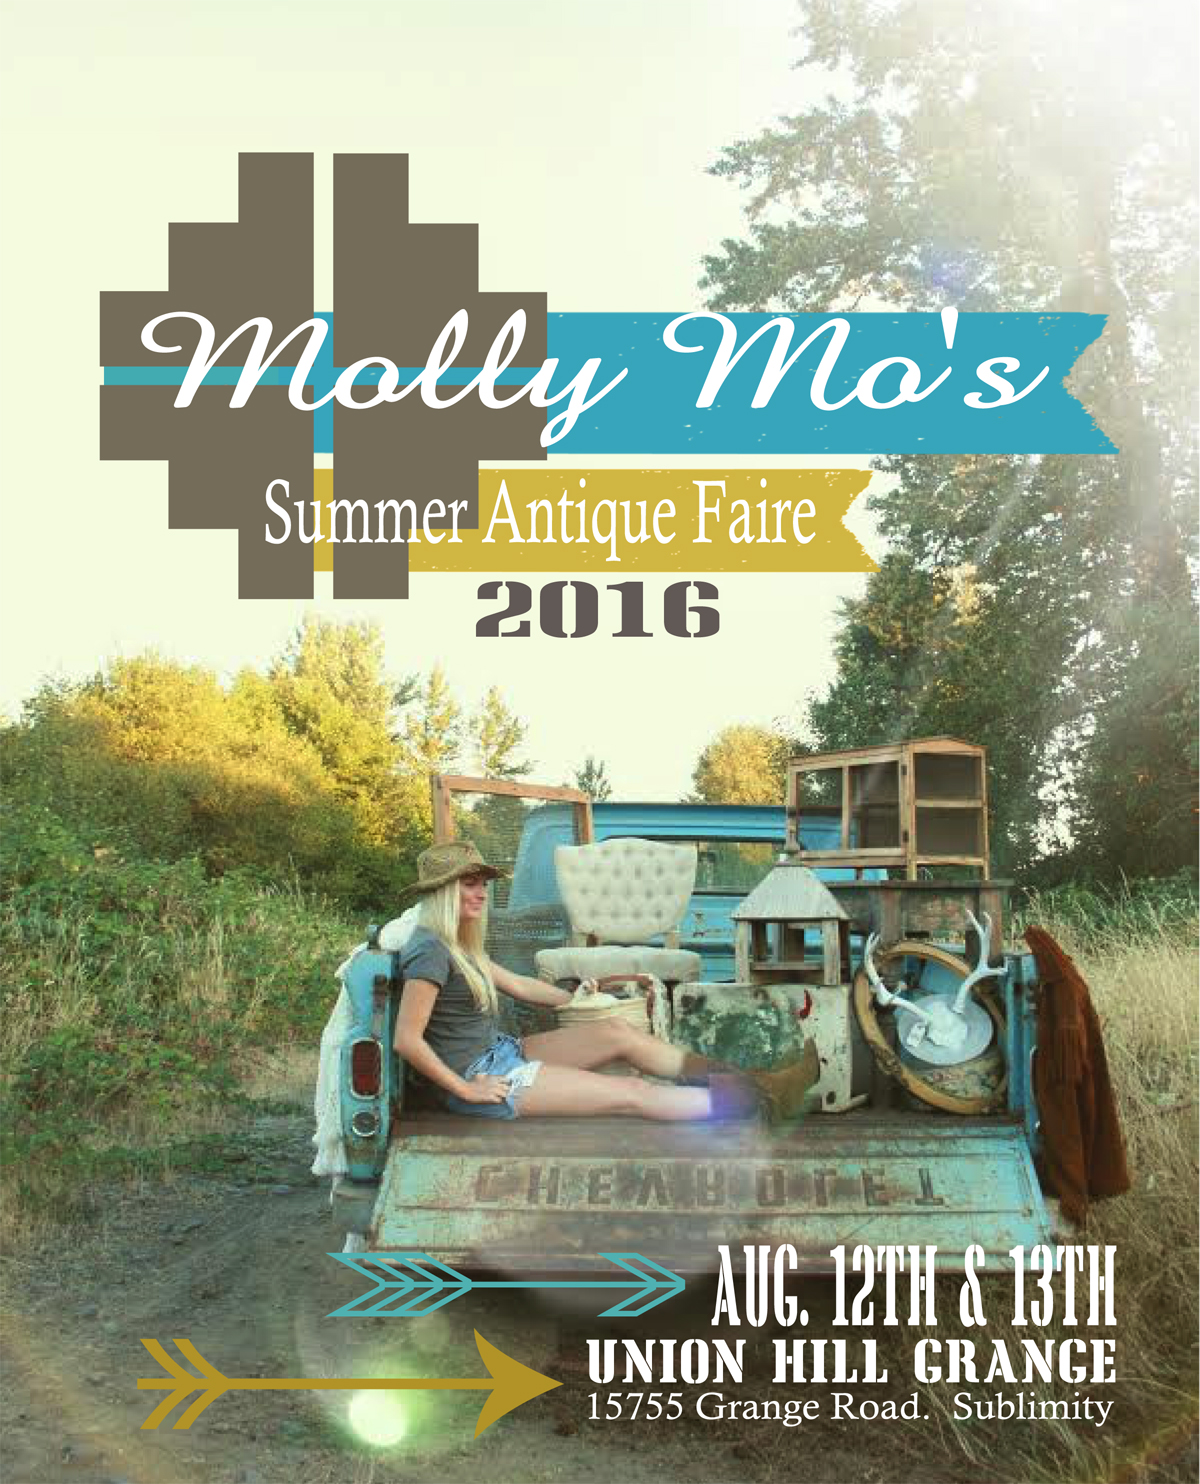 Molly Mo's 2016 Antique Faire